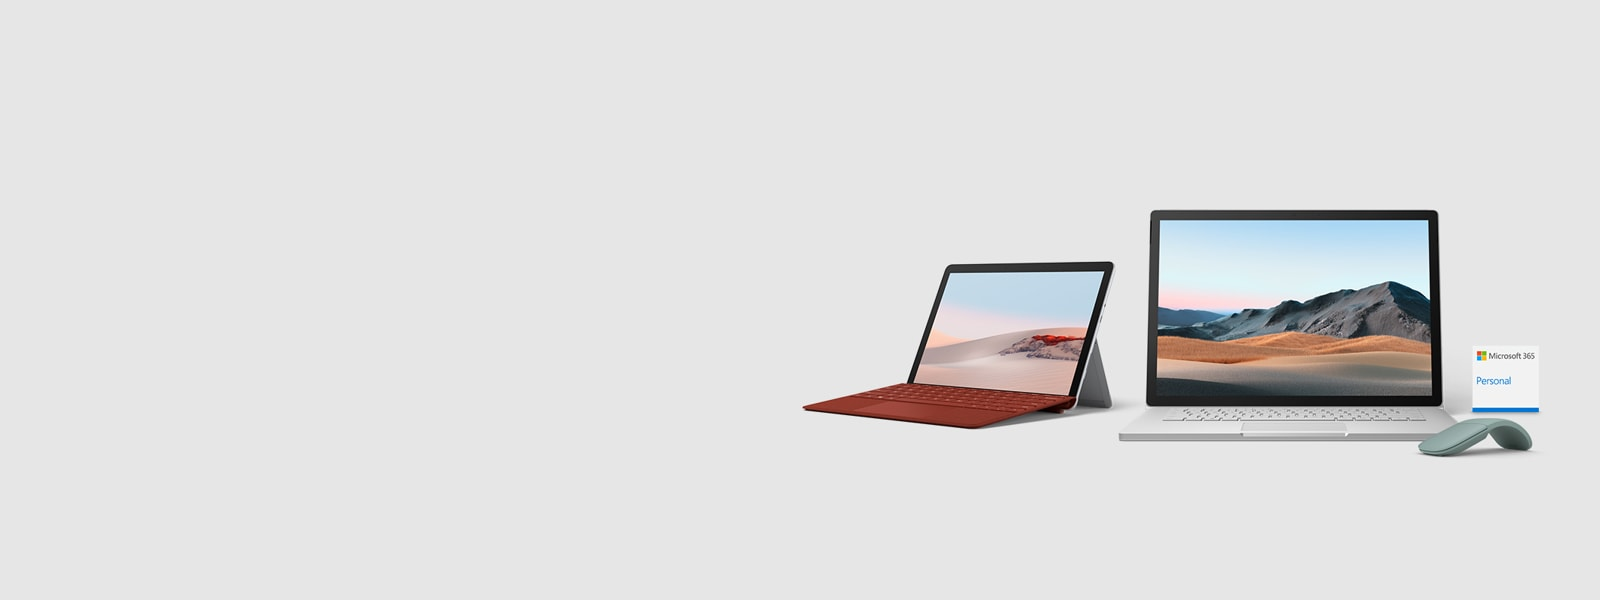 Surface Go 2 with Surface Book 3 and Microsoft 365 Personal and Microsoft Arc Mouse